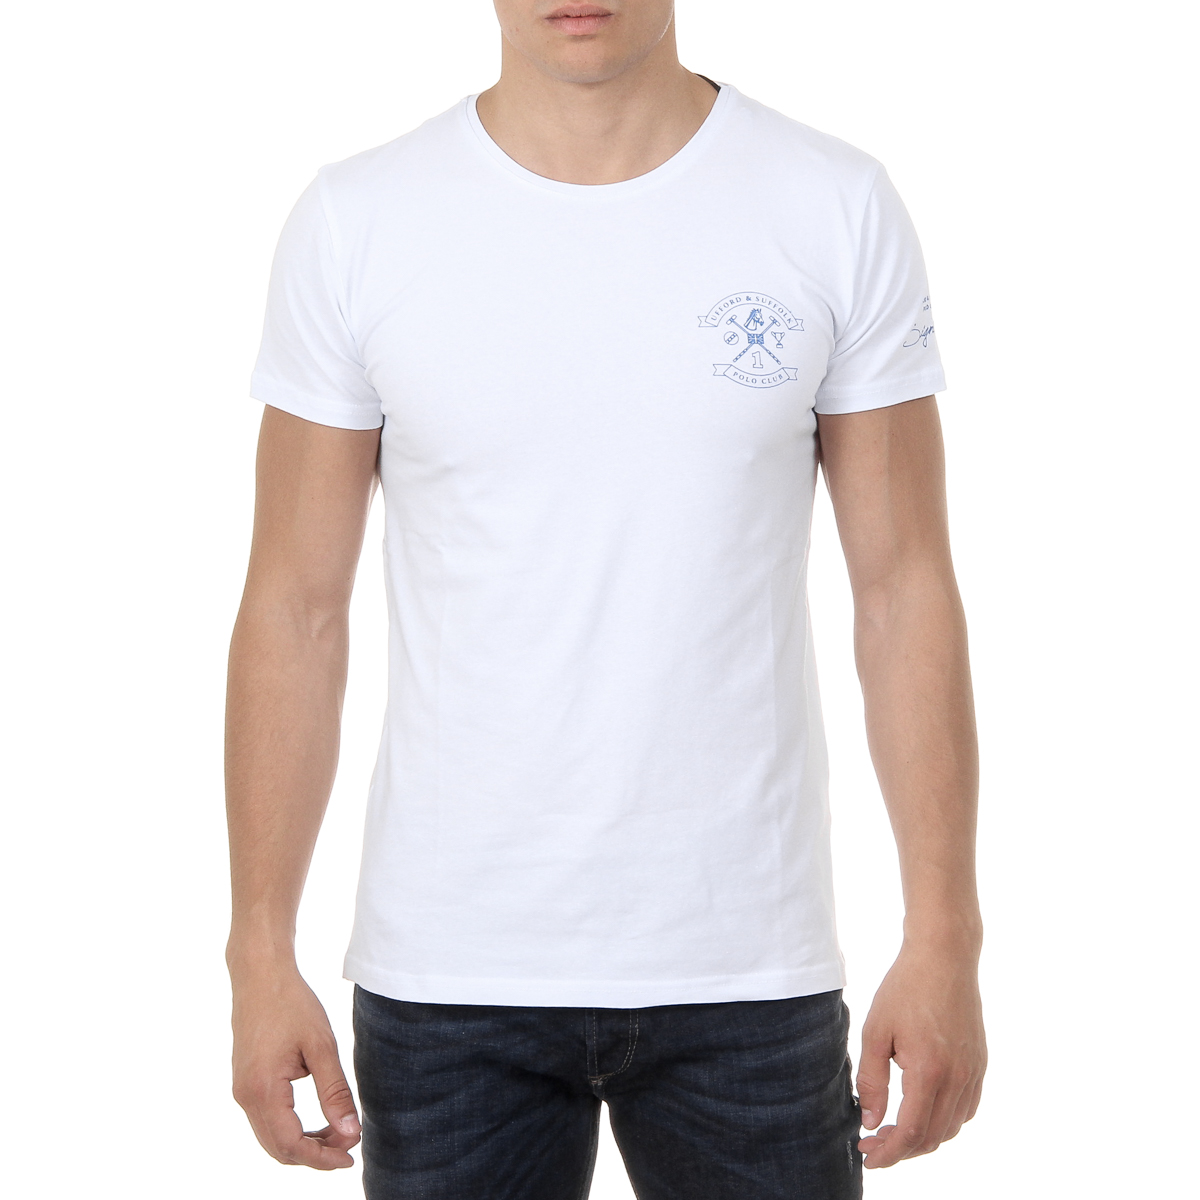 Primary image for Ufford & Suffolk Polo Club Mens T-Shirt Short Sleeves Round Neck US028 WHITE